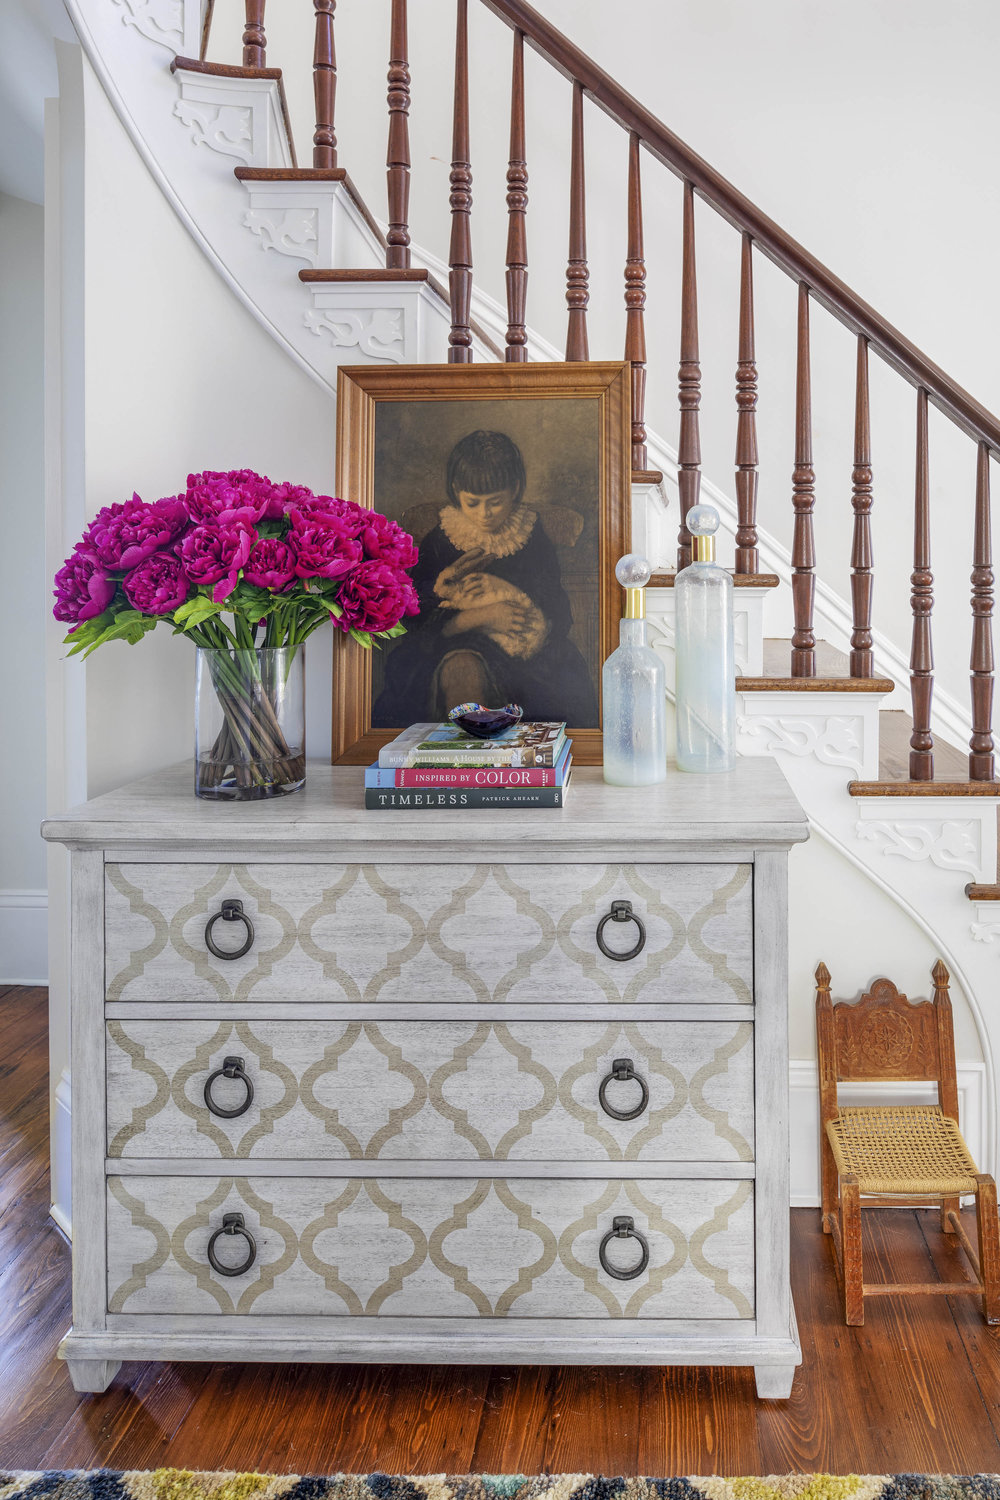 Digs Design, Digs, Digs Design Company, Interior Design, Jocelyn Chiappone, Rhode Island, Newport, Providence, Benefit Street, Hall, Staircase, Entryway